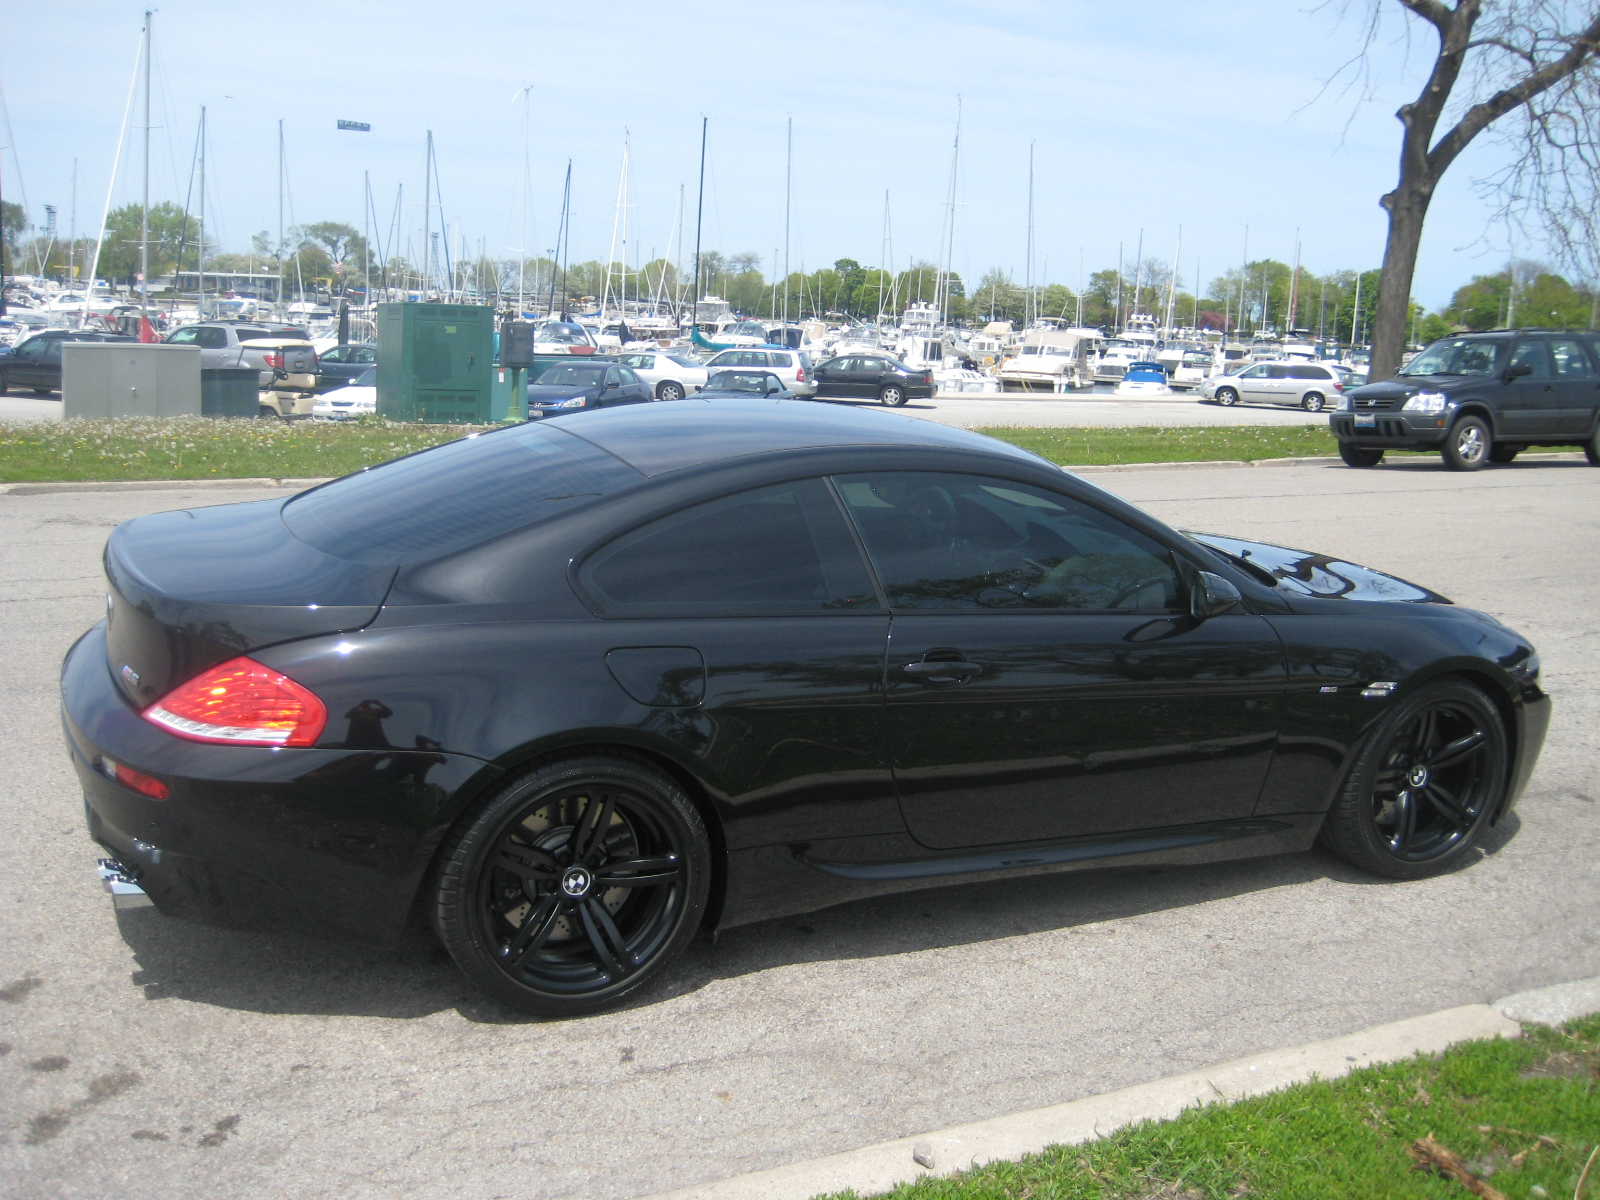 Bmw M5 Black On Black. Chicago quot;Black Arrowquot; summer